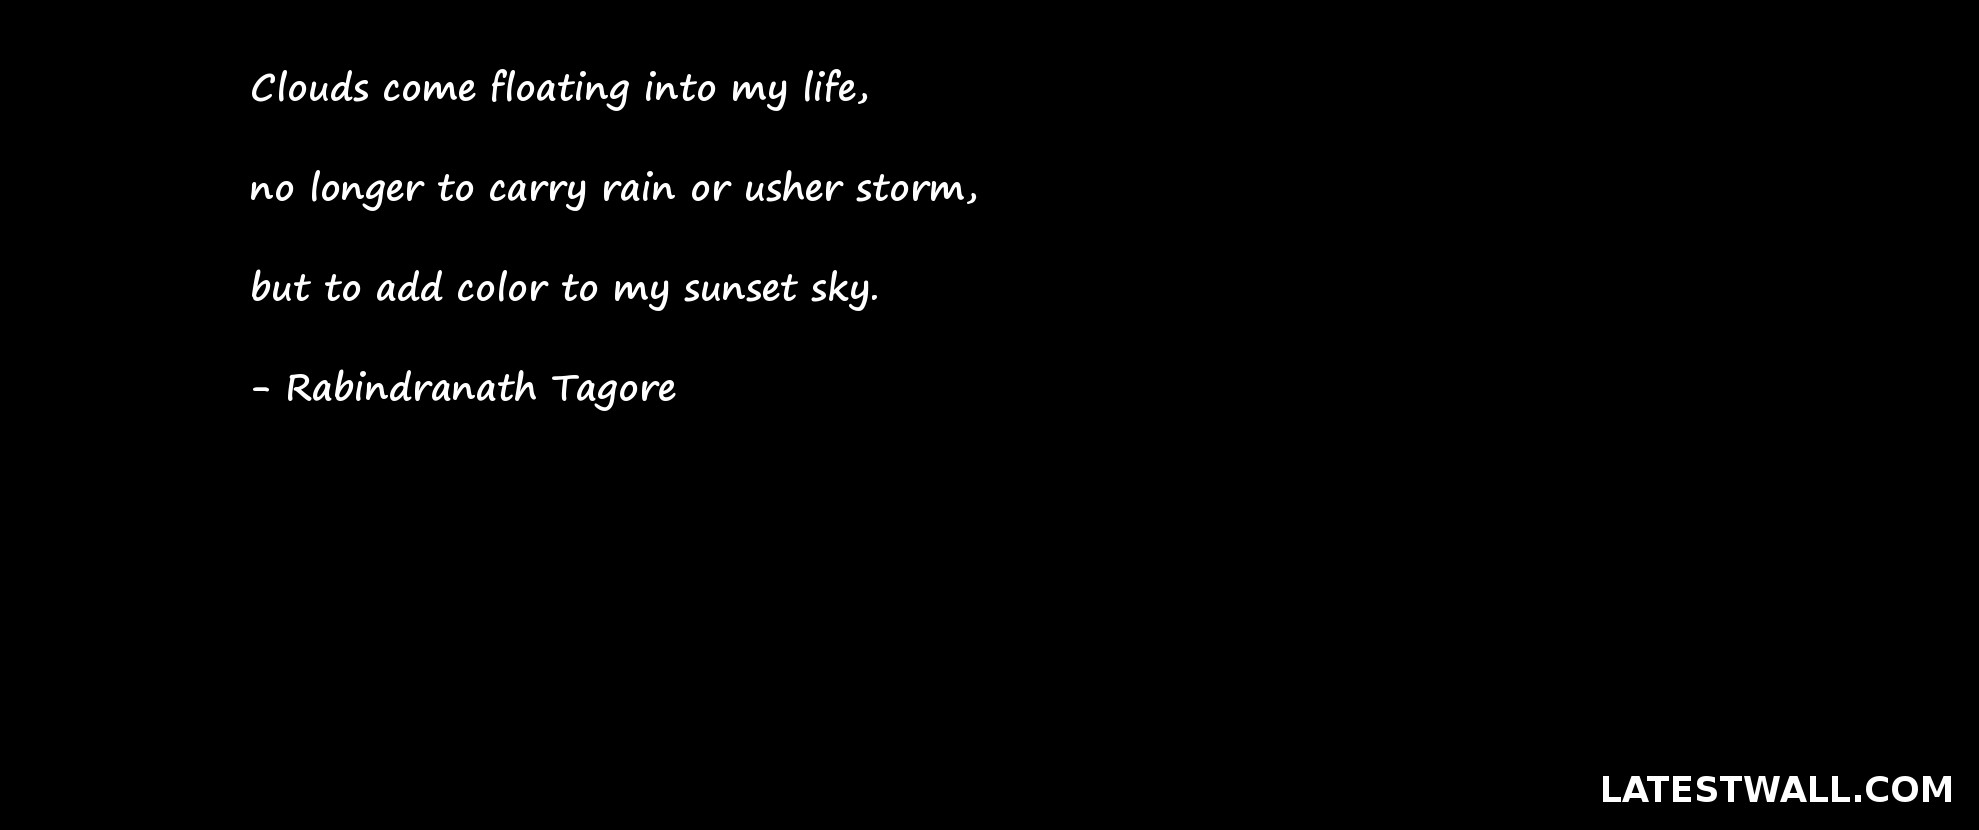 clouds come floating into my life inspirational quote latestwall